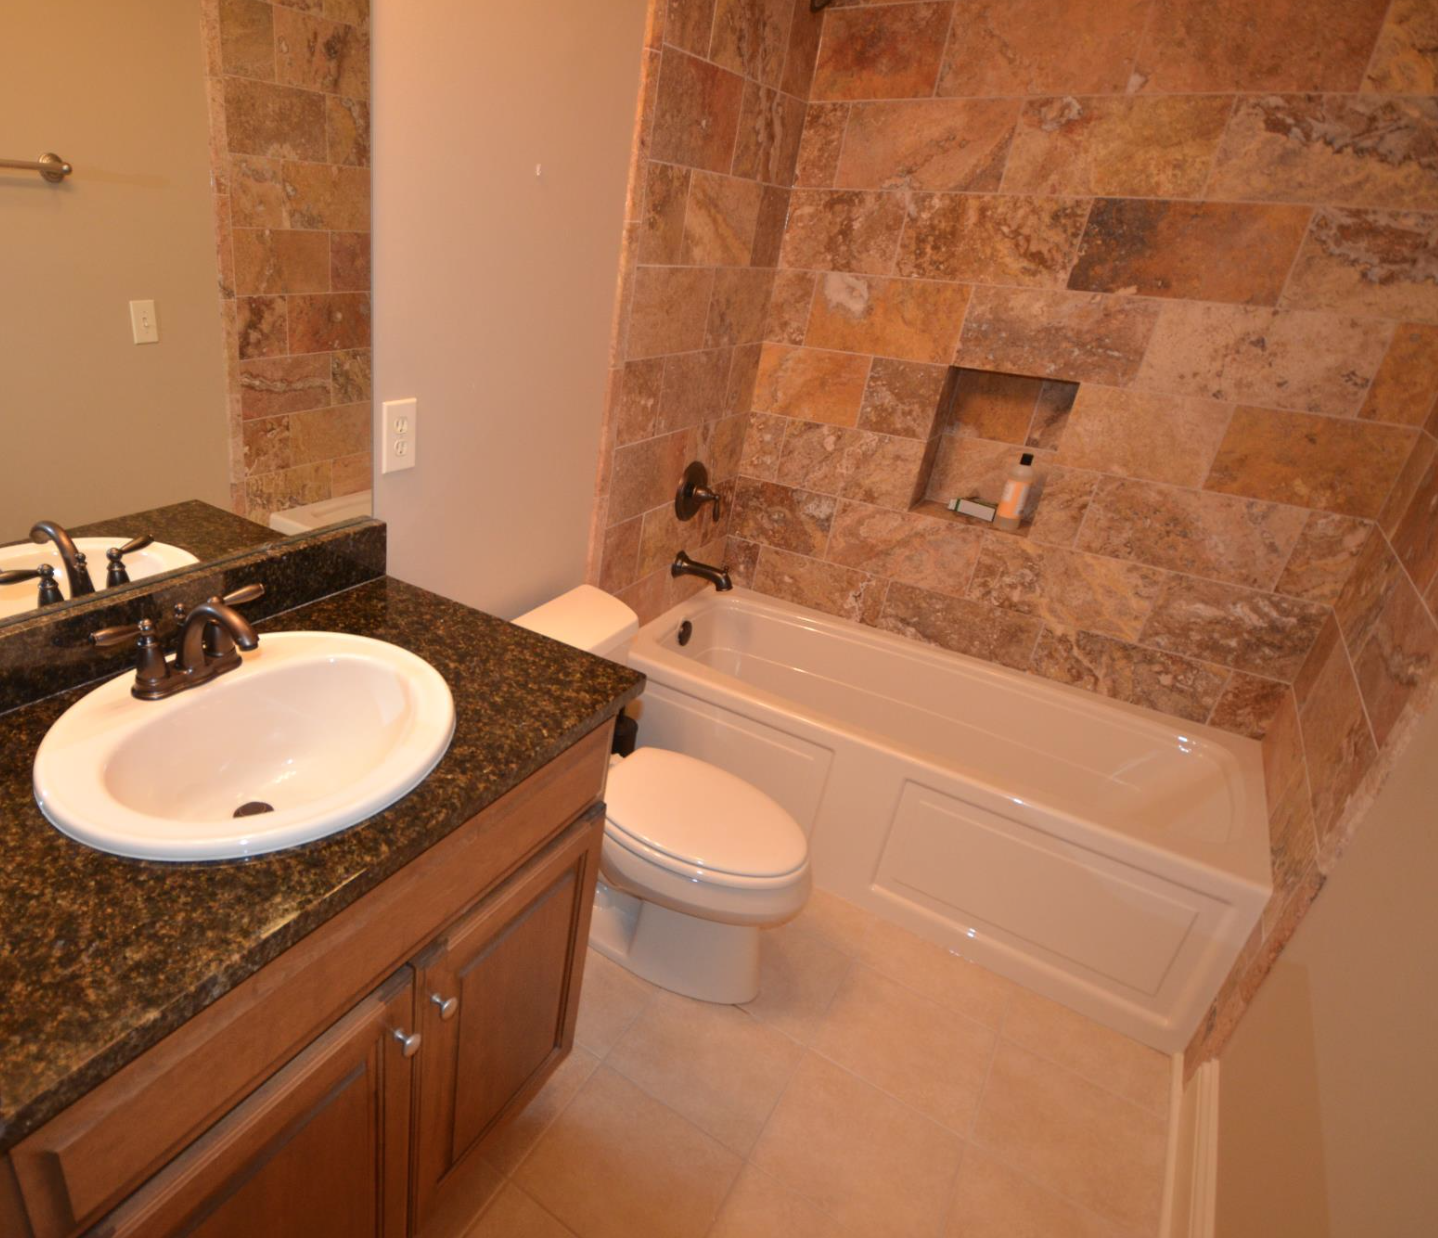 Bathroom Tips For Holiday Entertaining Luxury Bathroom Remodeling - 2 day bathroom remodel